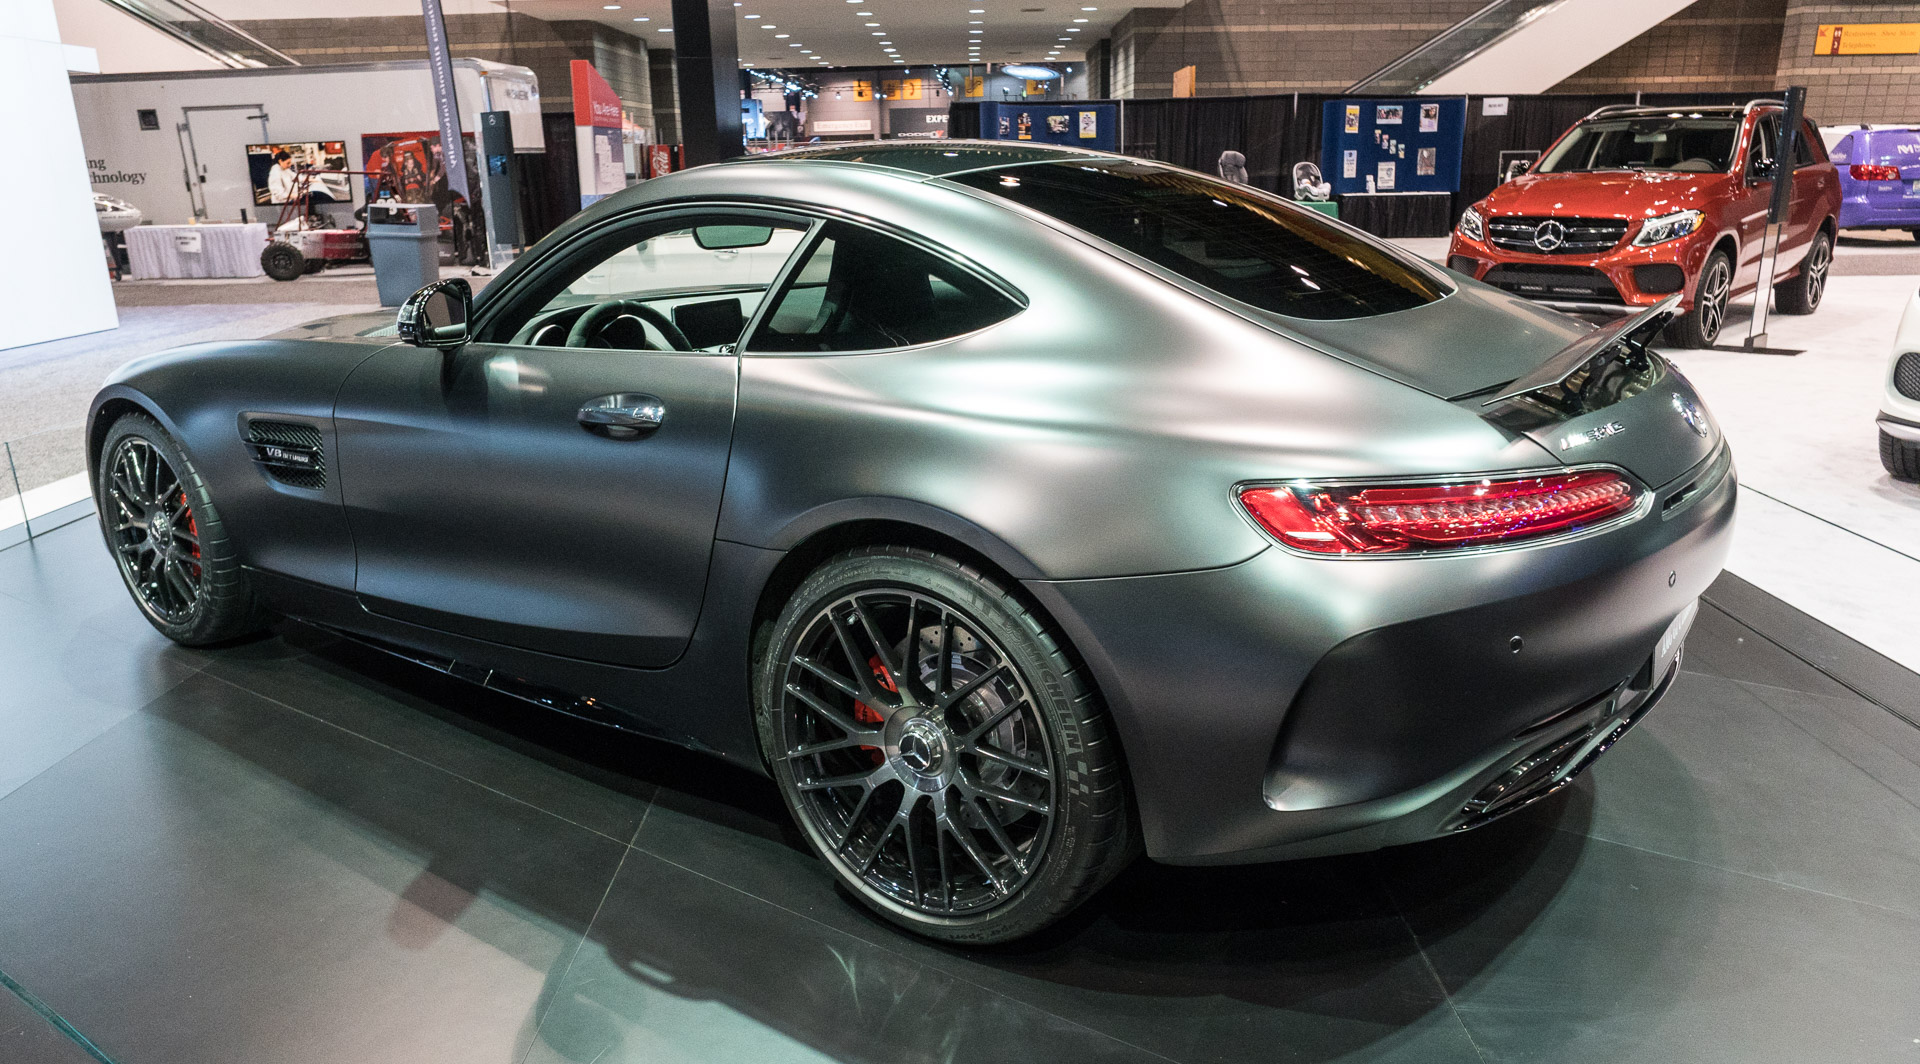 Up Close: Mercedes-AMG GT C Edition 50 - 95 Octane